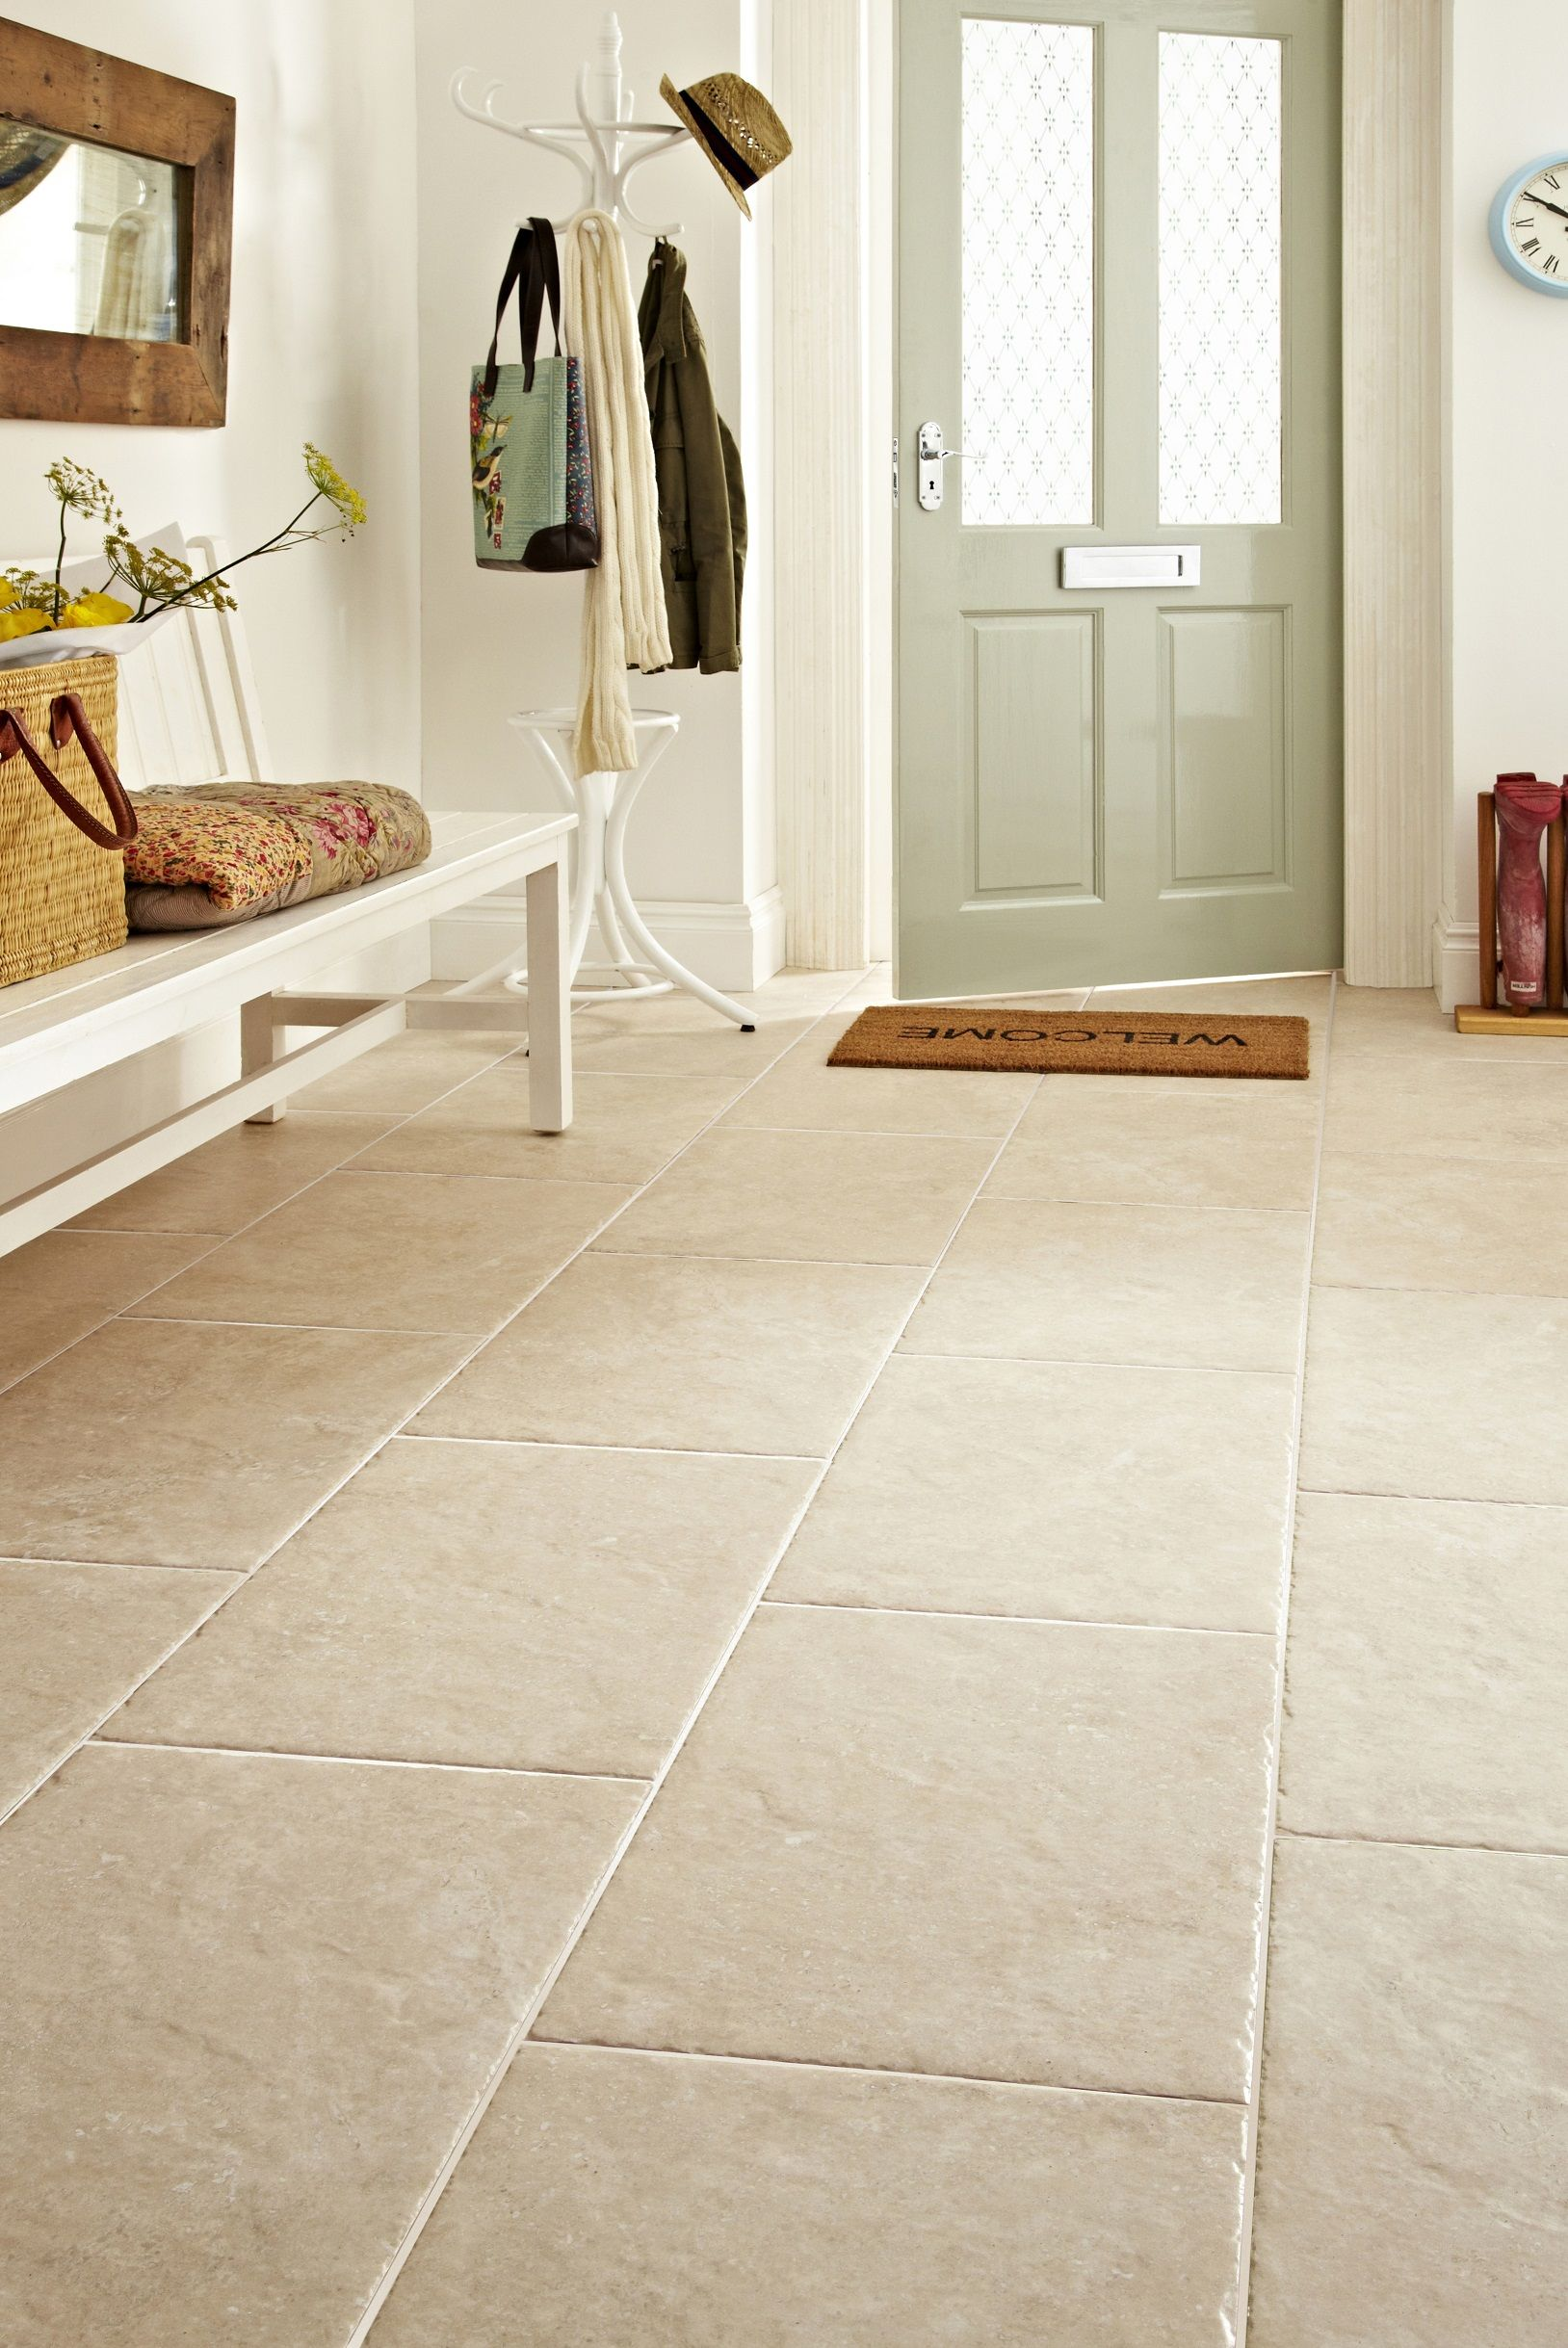 devon bone from topps tiles - potential for the dining room floor